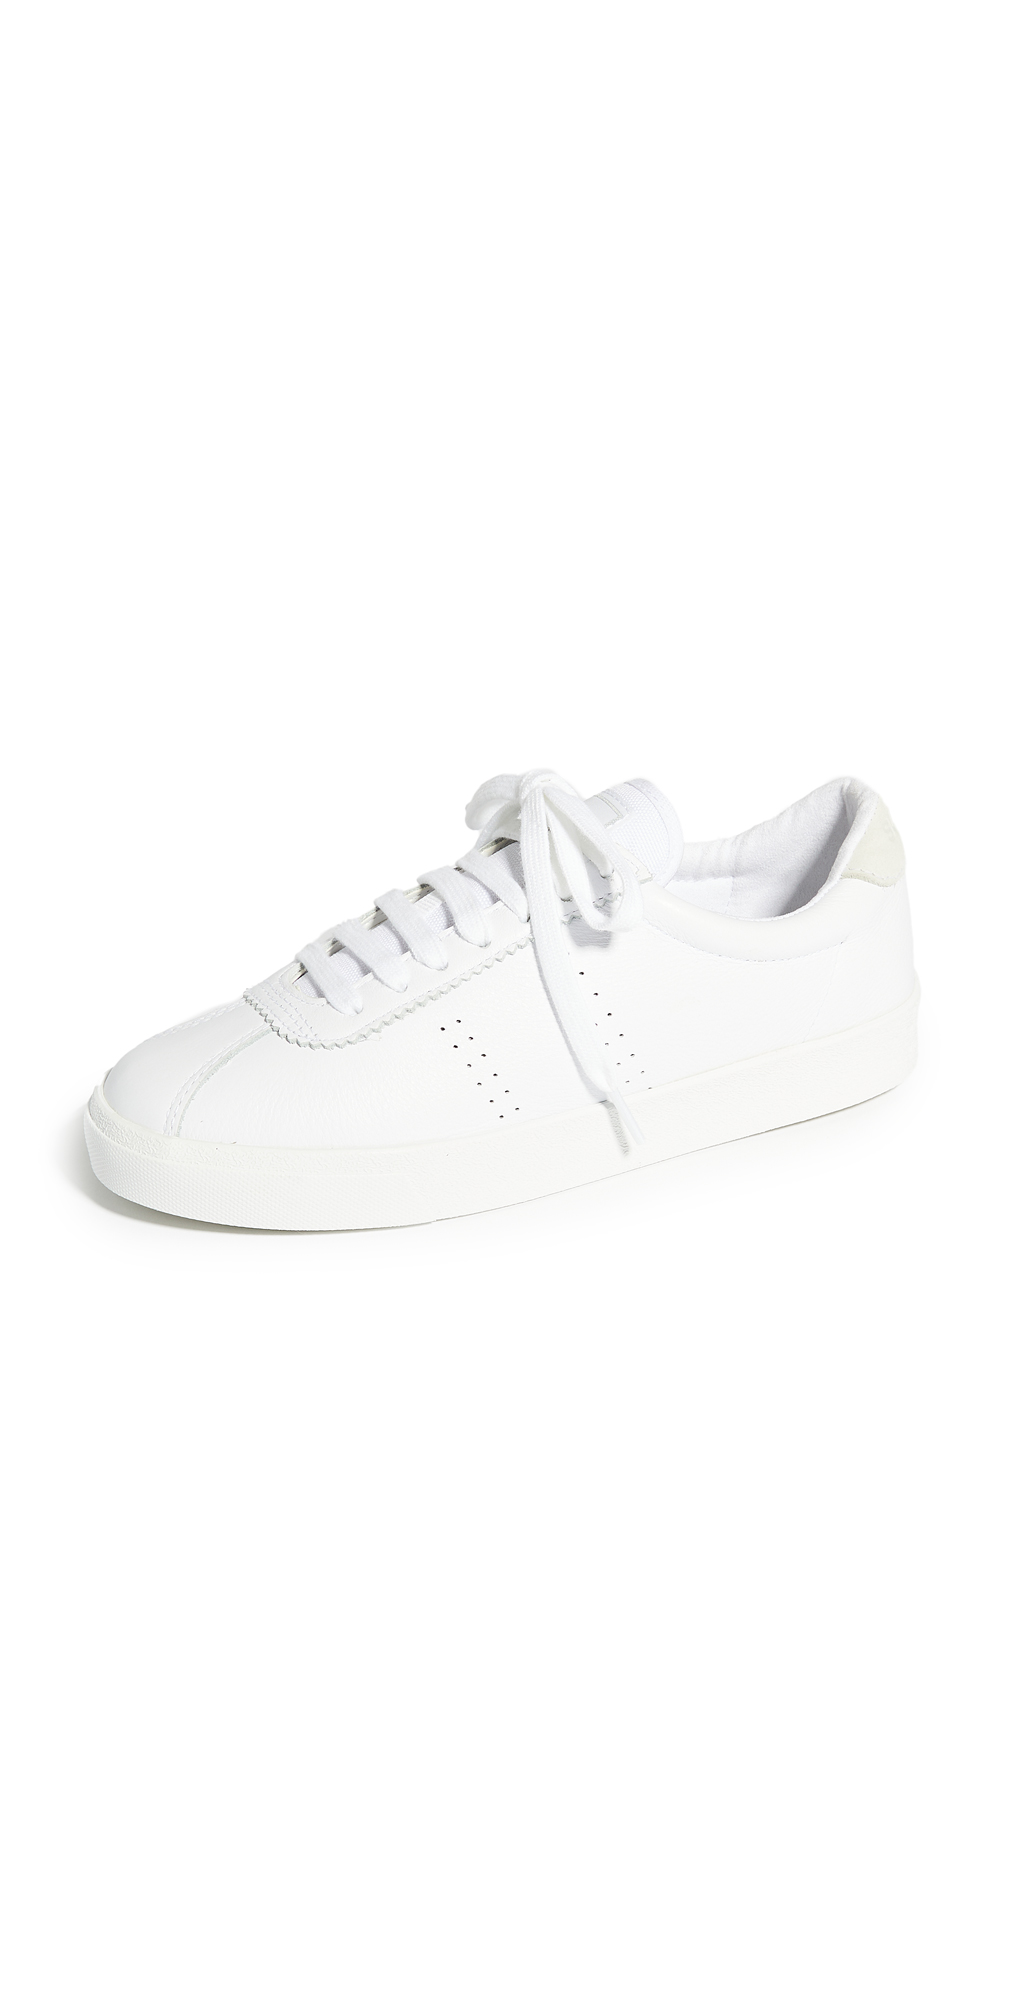 Superga 2843 Clubs Sneakers